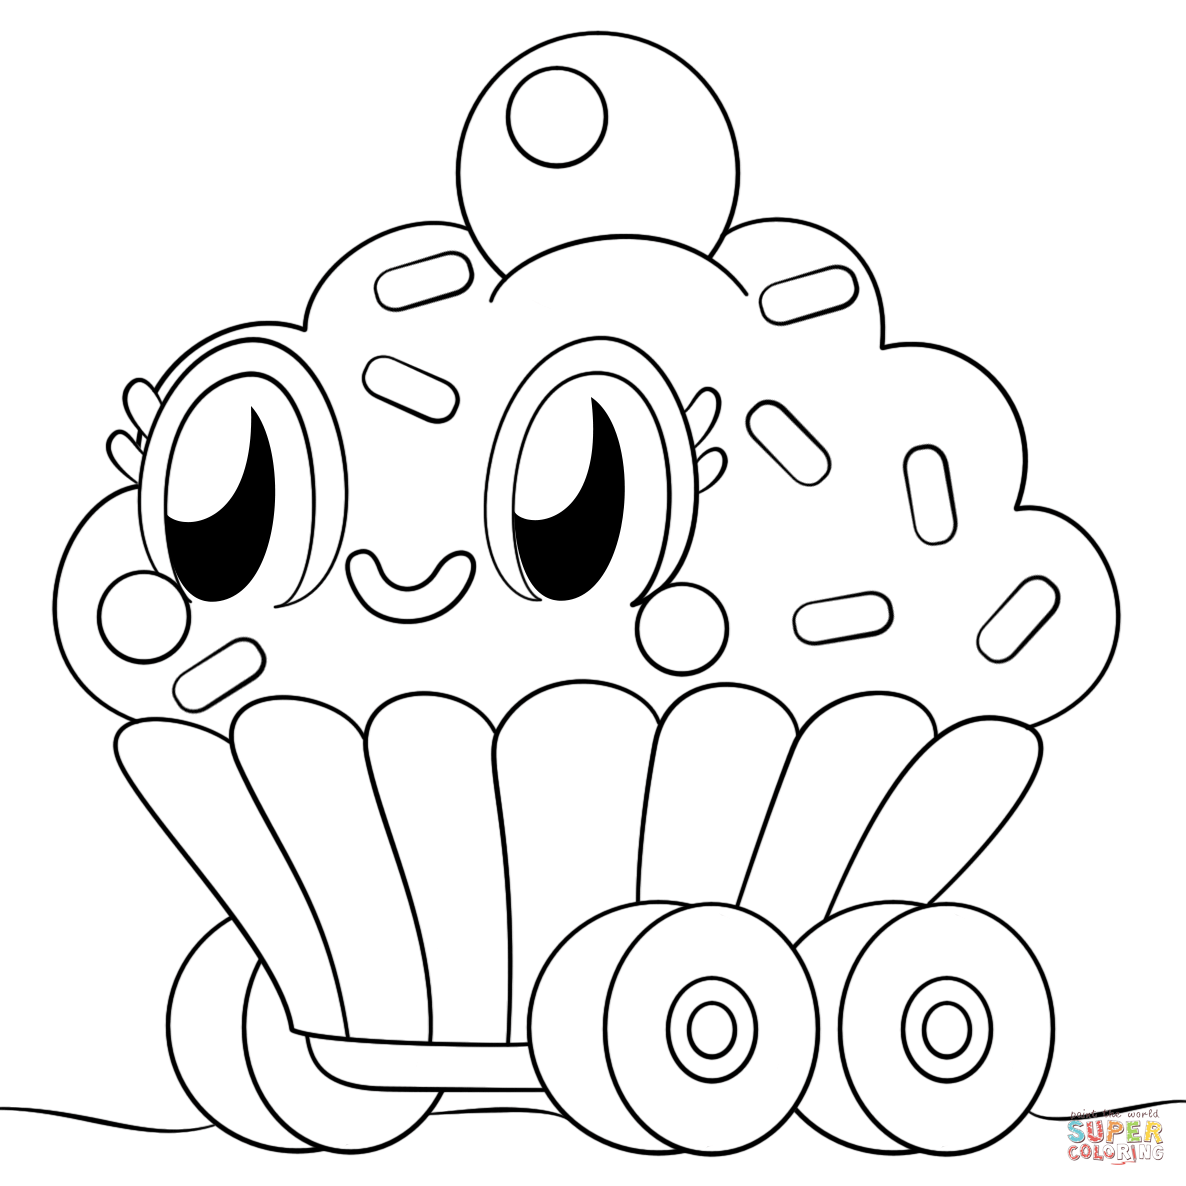 moshi monster coloring pages moshi monster gathering coloring pages color luna monster moshi pages coloring